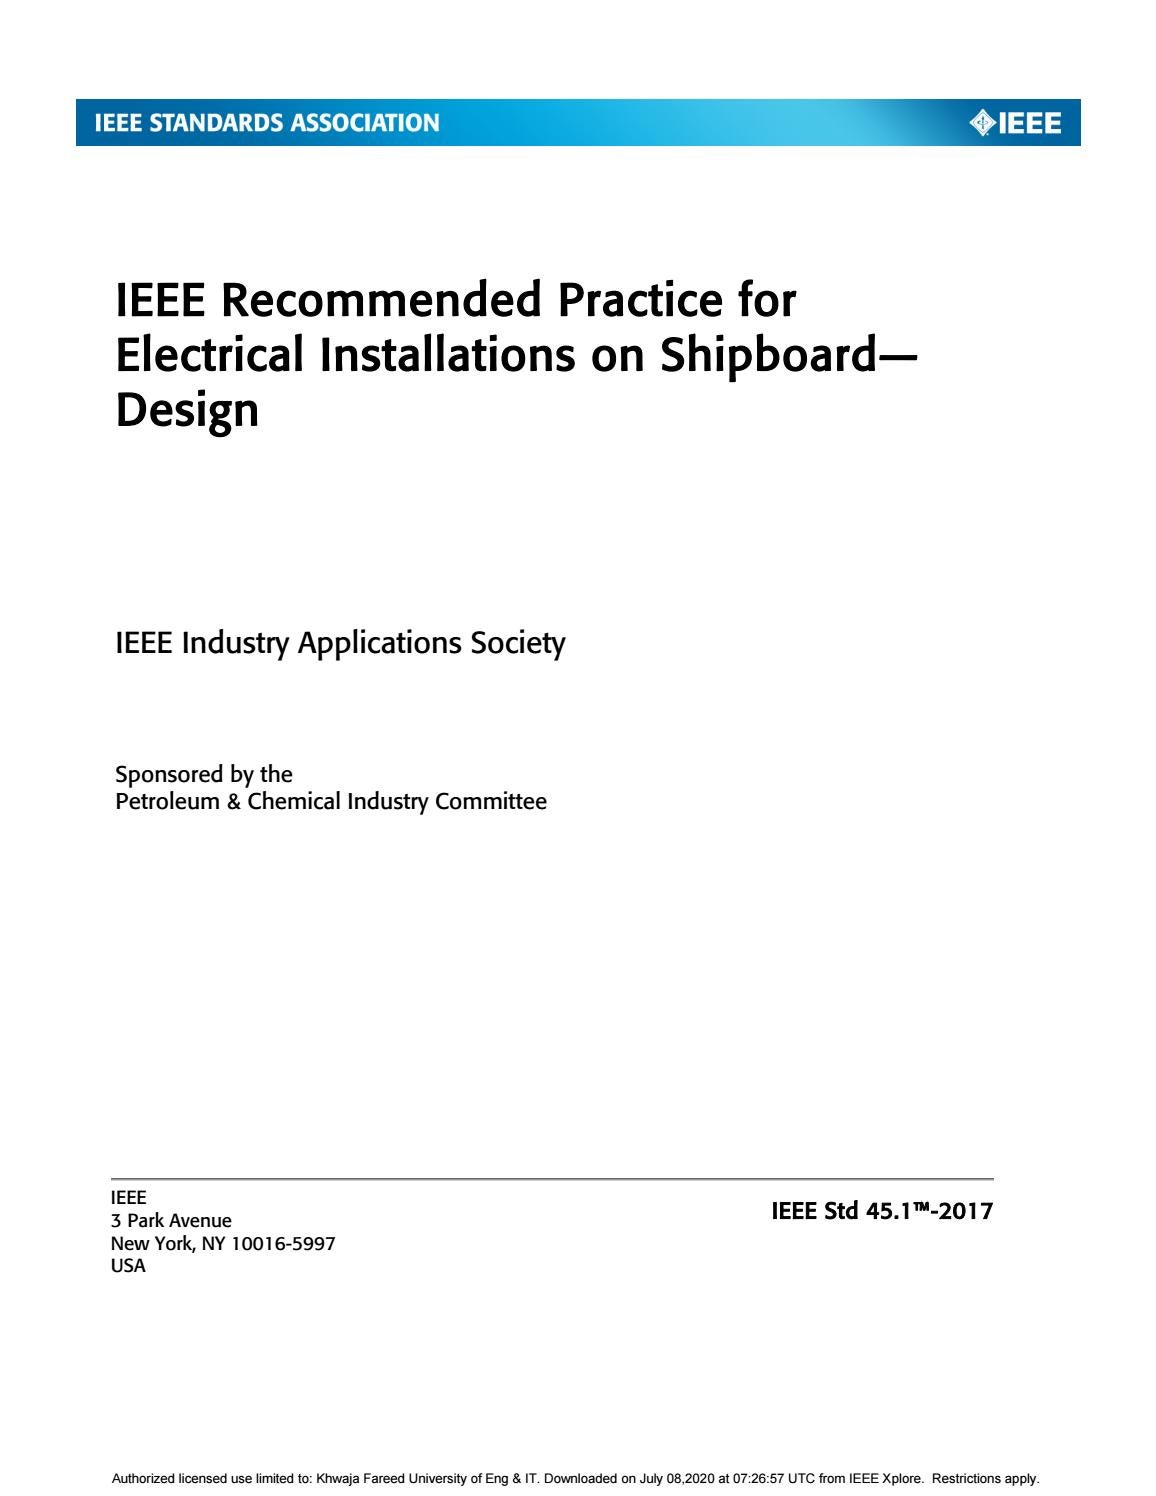 IEEE Recommended Practice for Electrical Installations on ...